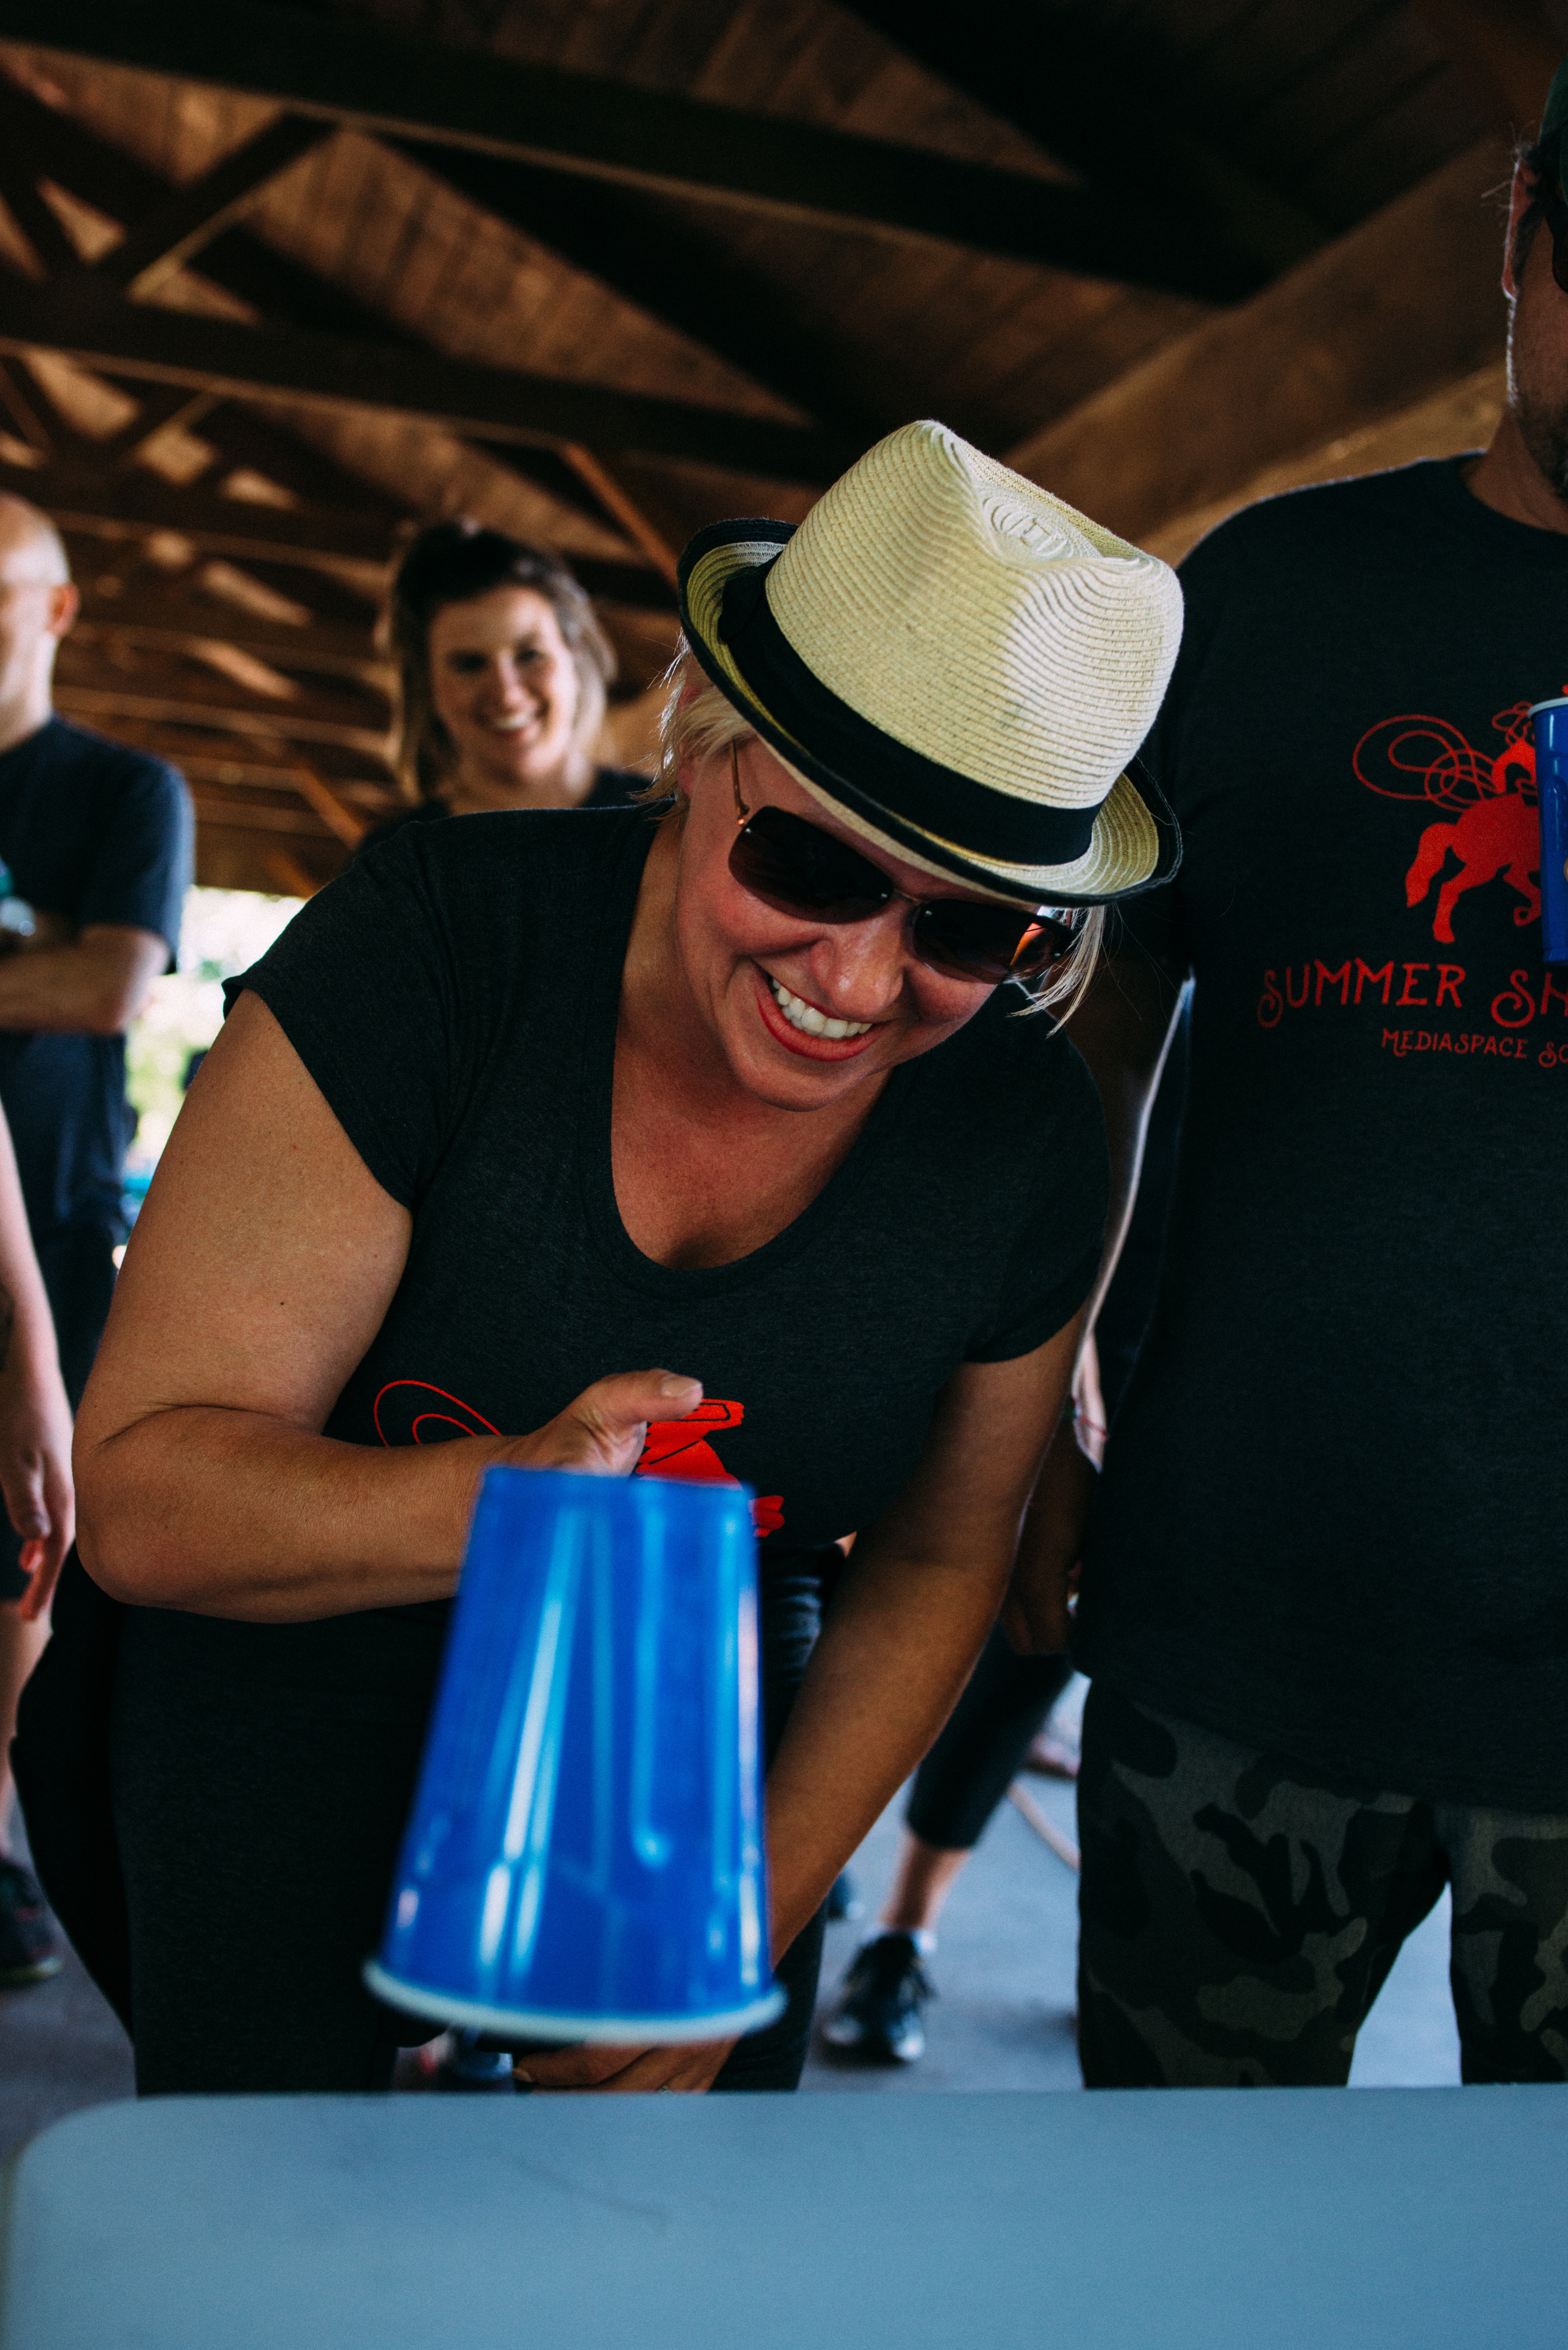 MSS_SummerParty (1 of 1)-49.jpg